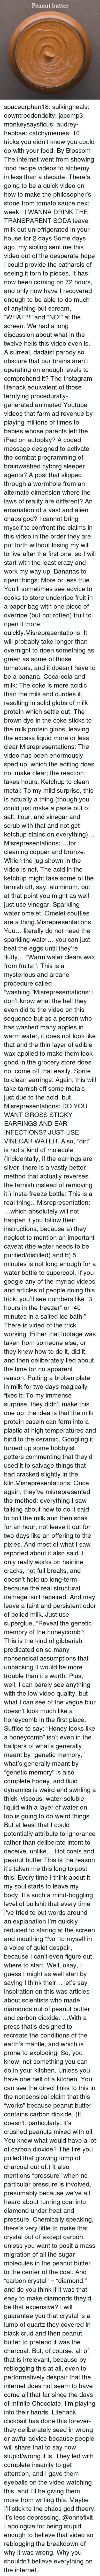 "Advice, Brains, and Coca-Cola: Peanut butter spaceorphan18:  sulkingheals:  downtroddendeity:  jacemp3:  monkeysaysficus:   audrey-hepbae:  catchymemes:  10 tricks you didn't know you could do with your food. By Blossom  The internet went from showing food recipe videos to alchemy in less than a decade. There's going to be a quick video on how to make the philosopher's stone from tomato sauce next week.    I WANNA DRINK THE TRANSPARENT SODA   leave milk out unrefrigerated in your house for 2 days  Some days ago, my sibling sent me this video out of the desperate hope I could provide the catharsis of seeing it torn to pieces. It has now been coming on 72 hours, and only now have I recovered enough to be able to do much of anything but scream, ""WHAT?!"" and ""NO!"" at the screen. We had a long discussion about what in the twelve hells this video even is. A surreal, dadaist parody so obscure that our brains aren't operating on enough levels to comprehend it? The Instagram lifehack equivalent of those terrifying procedurally-generated animated Youtube videos that farm ad revenue by playing millions of times to babies whose parents left the iPad on autoplay? A coded message designed to activate the combat programming of brainwashed cyborg sleeper agents? A post that slipped through a wormhole from an alternate dimension where the laws of reality are different? An emanation of a vast and alien chaos god? I cannot bring myself to confront the claims in this video in the order they are put forth without losing my will to live after the first one, so I will start with the least crazy and work my way up. Bananas to ripen things: More or less true. You'll sometimes see advice to cooks to store underripe fruit in a paper bag with one piece of overripe (but not rotten) fruit to ripen it more quickly.Misrepresentations: It will probably take longer than overnight to ripen something as green as some of those tomatoes, and it doesn't have to be a banana. Coca-cola and milk: The coke is more acidic than the  milk and curdles it, resulting in solid globs of milk protein which  settle out. The brown dye in the coke sticks to the milk protein globs,  leaving the excess liquid more or less clear.Misrepresentations: The video has been enormously sped up, which the editing does not make clear; the reaction takes hours. Ketchup to clean metal: To my mild surprise, this is actually a thing (though you could just make a paste out of salt, flour, and vinegar and scrub with that and not get ketchup stains on everything)…Misrepresentations: …for cleaning copper and bronze. Which the jug shown in the video is not. The acid in the ketchup might take some of the tarnish off, say, aluminum, but at that point you might as well just use vinegar. Sparkling water omelet: Omelet souffles are a thing.Misrepresentations: You… literally do not need the sparkling water… you can just beat the eggs until they're fluffy…   ""Warm water clears wax from fruits!"": This is a mysterious and arcane procedure called ""washing.""Misrepresentations: I don't know what the hell they even did to the video on this sequence but as a person who has washed many apples in warm water, it does not look like that and the thin layer of edible wax applied to make them look good in the grocery store does not come off that easily. Sprite to clean earrings: Again, this will take tarnish off some metals just due to the acid, but…Misrepresentations: DO YOU WANT GROSS STICKY EARRINGS AND EAR INFECTIONS? JUST USE VINEGAR WATER. Also, ""dirt"" is not a kind of molecule. (Incidentally, if the earrings are silver, there is a vastly better method that actually reverses the tarnish instead of removing it.) Insta-freeze bottle: This is a real thing…Misrepresentation: …which absolutely will not happen if you follow their instructions, because a) they neglect to mention an important caveat (the water needs to be purified/distilled) and b) 5 minutes is not long enough for a water bottle to supercool. If you google any of the myriad videos and articles of people doing this trick, you'll see numbers like ""3 hours in the freezer"" or ""40 minutes in a salted ice bath."" There is video of the trick working. Either that footage was taken from someone else, or they knew how to do it, did it, and then deliberately lied about the time for no apparent reason. Putting a broken plate in milk for two days magically fixes it: To my immense surprise, they didn't make this one up; the idea is that the milk protein casein can form into a plastic at high temperatures and bind to the ceramic. Googling it turned up some hobbyist potters commenting that they'd used it to salvage things that had cracked slightly in the kiln.Misrepresentations: Once again, they've misrepresented the method: everything I saw talking about how to do it said to boil the milk and then soak for an hour, not leave it out for two days like an offering to the pixies. And most of what I saw reported about it also said it only really works on hairline cracks, not full breaks, and doesn't hold up long-term because the real structural damage isn't repaired. And may leave a faint and persistent odor of boiled milk. Just use superglue. ""Reveal the genetic memory of the honeycomb"": This is the kind of gibberish predicated on so many nonsensical assumptions that unpacking it would be more trouble than it's worth. Plus, well, I can barely see anything with the low video quality, but what I can see of the vague blur doesn't look much like a honeycomb in the first place. Suffice to say: ""Honey looks like a honeycomb"" isn't even in the ballpark of what's generally meant by ""genetic memory,"" what's generally meant by ""genetic memory"" is also complete hooey, and fluid dynamics is weird and swirling a thick, viscous, water-soluble liquid with a layer of water on top is going to do weird things. But at least that I could potentially attribute to ignorance rather than deliberate intent to deceive, unlike… Hot coals and peanut butter This is the reason it's taken me this long to post this. Every time I think about it my soul starts to leave my body. It's such a mind-boggling level of bullshit that every time I've tried to put words around an explanation I'm quickly reduced to staring at the screen and mouthing ""No"" to myself in a voice of quiet despair, because I can't even figure out where to start. Well, okay, I guess I might as well start by saying I think their… let's say inspiration on this was articles about scientists who made diamonds out of peanut butter and carbon dioxide. …With a press that's designed to recreate the conditions of the earth's mantle, and which is prone to exploding. So, you know, not something you can do in your kitchen. Unless you have one hell of a kitchen. You can see the direct links to this in the nonsensical claim that this ""works"" because peanut butter contains carbon dioxide. (It doesn't, particularly. It's crushed peanuts mixed with oil. You know what would have a lot of carbon dioxide? The fire you pulled that glowing lump of charcoal out of.) It also mentions ""pressure"" when no particular pressure is involved, presumably because we've all heard about turning coal into diamond under heat and pressure. Chemically speaking, there's very little to make that crystal out of except carbon, unless you want to posit a mass migration of all the sugar molecules in the peanut butter to the center of the coal. And ""carbon crystal"" = ""diamond,"" and do you think if it was that easy to make diamonds they'd be that expensive? I will guarantee you that crystal is a lump of quartz they covered in black crud and then peanut butter to pretend it was the charcoal. But, of course, all of that is irrelevant, because by reblogging this at all, even to performatively despair that the internet does not seem to have come all that far since the days of Infinite Chocolate, I'm playing into their hands. Lifehack clickbait has done this forever- they deliberately seed in wrong or awful advice because people will share that to say how stupid/wrong it is. They led with complete insanity to get attention, and I gave them eyeballs on the video watching this, and I'll be giving them more from writing this. Maybe I'll stick to the chaos god theory. It's less depressing. @ohnofixit   I apologize for being stupid enough to believe that video so reblogging the breakdown of why it was wrong.  Why you shouldn't believe everything on the internet."